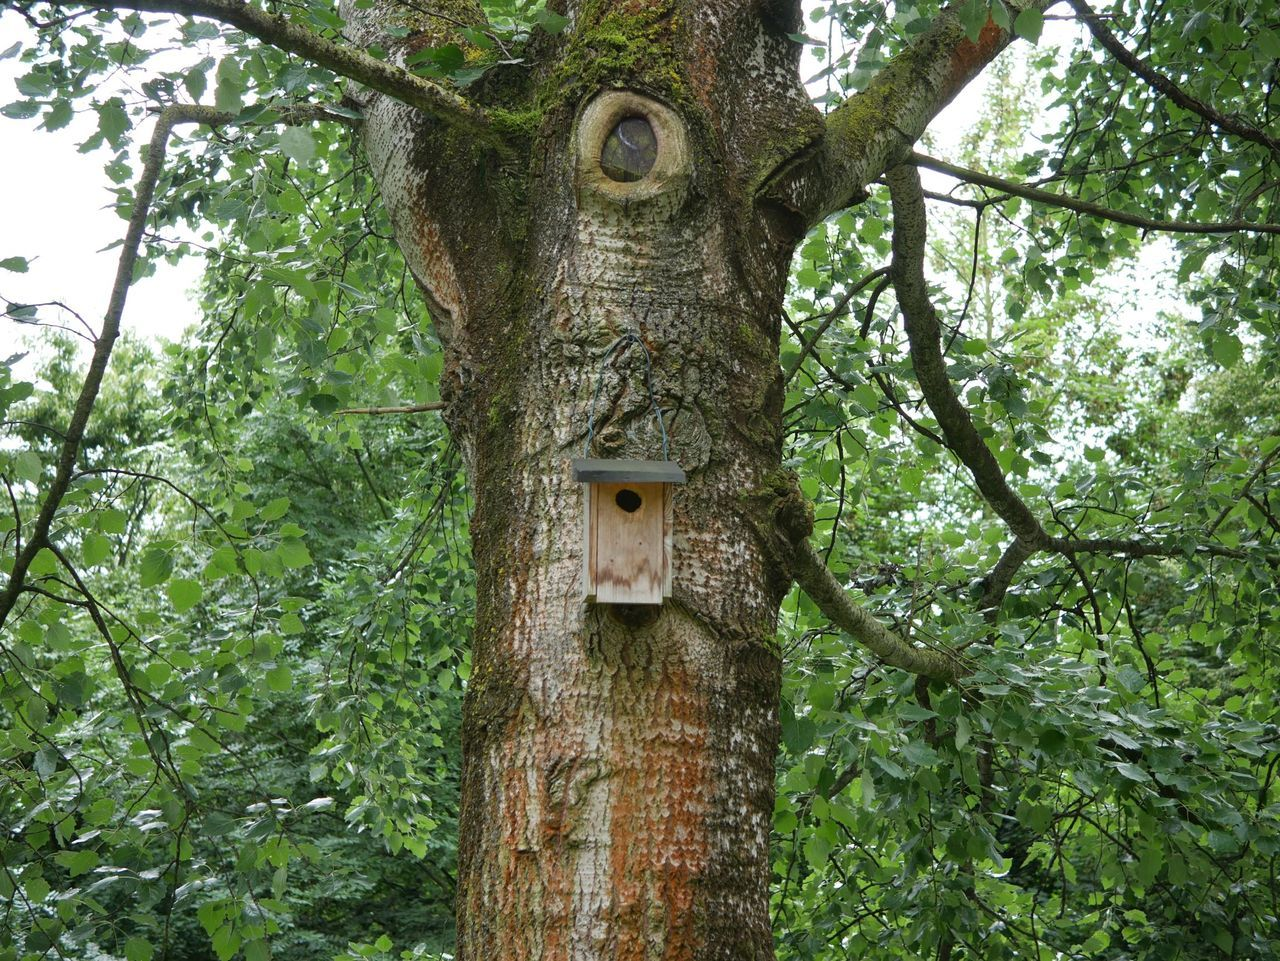 Low Angle View Of Wooden Birdhouse On Tree